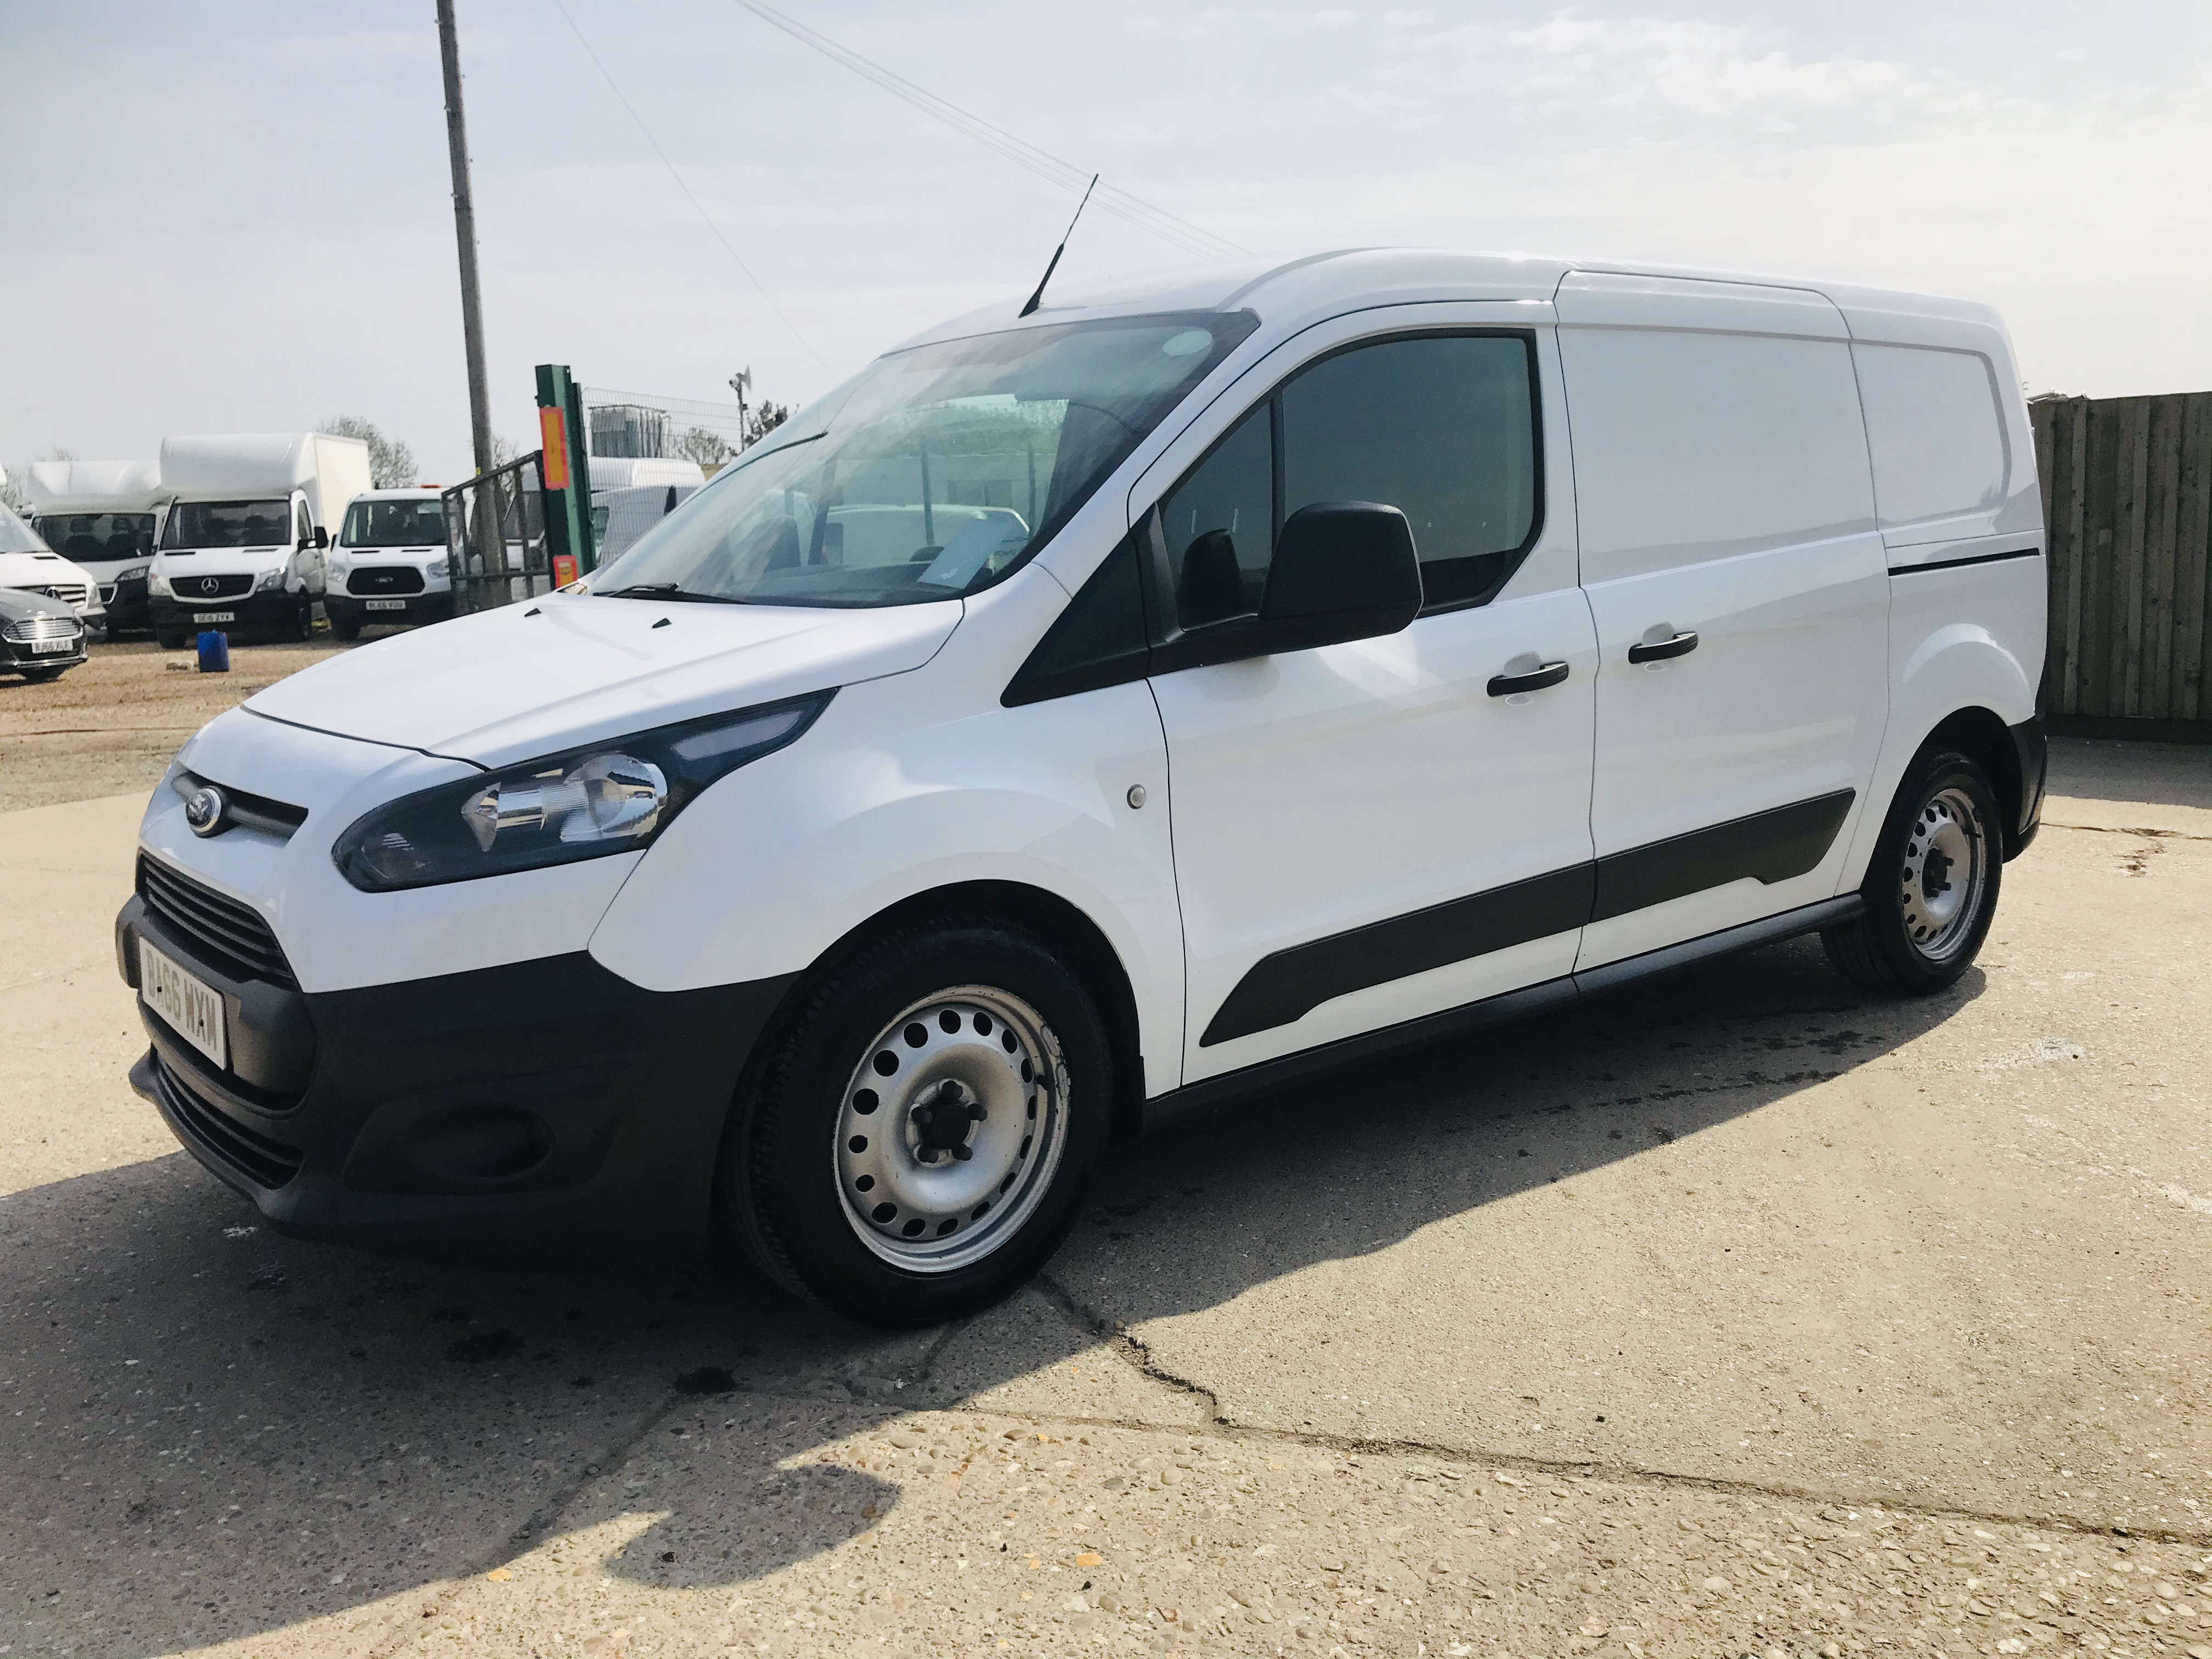 """ON SALE FORD TRANSIT CONNECT 1.6TDCI ECO-TECH 'LWB' 2017 REG - 1 OWNER - FSH - EURO 6""""ULEZ COMPLIANT - Image 6 of 30"""